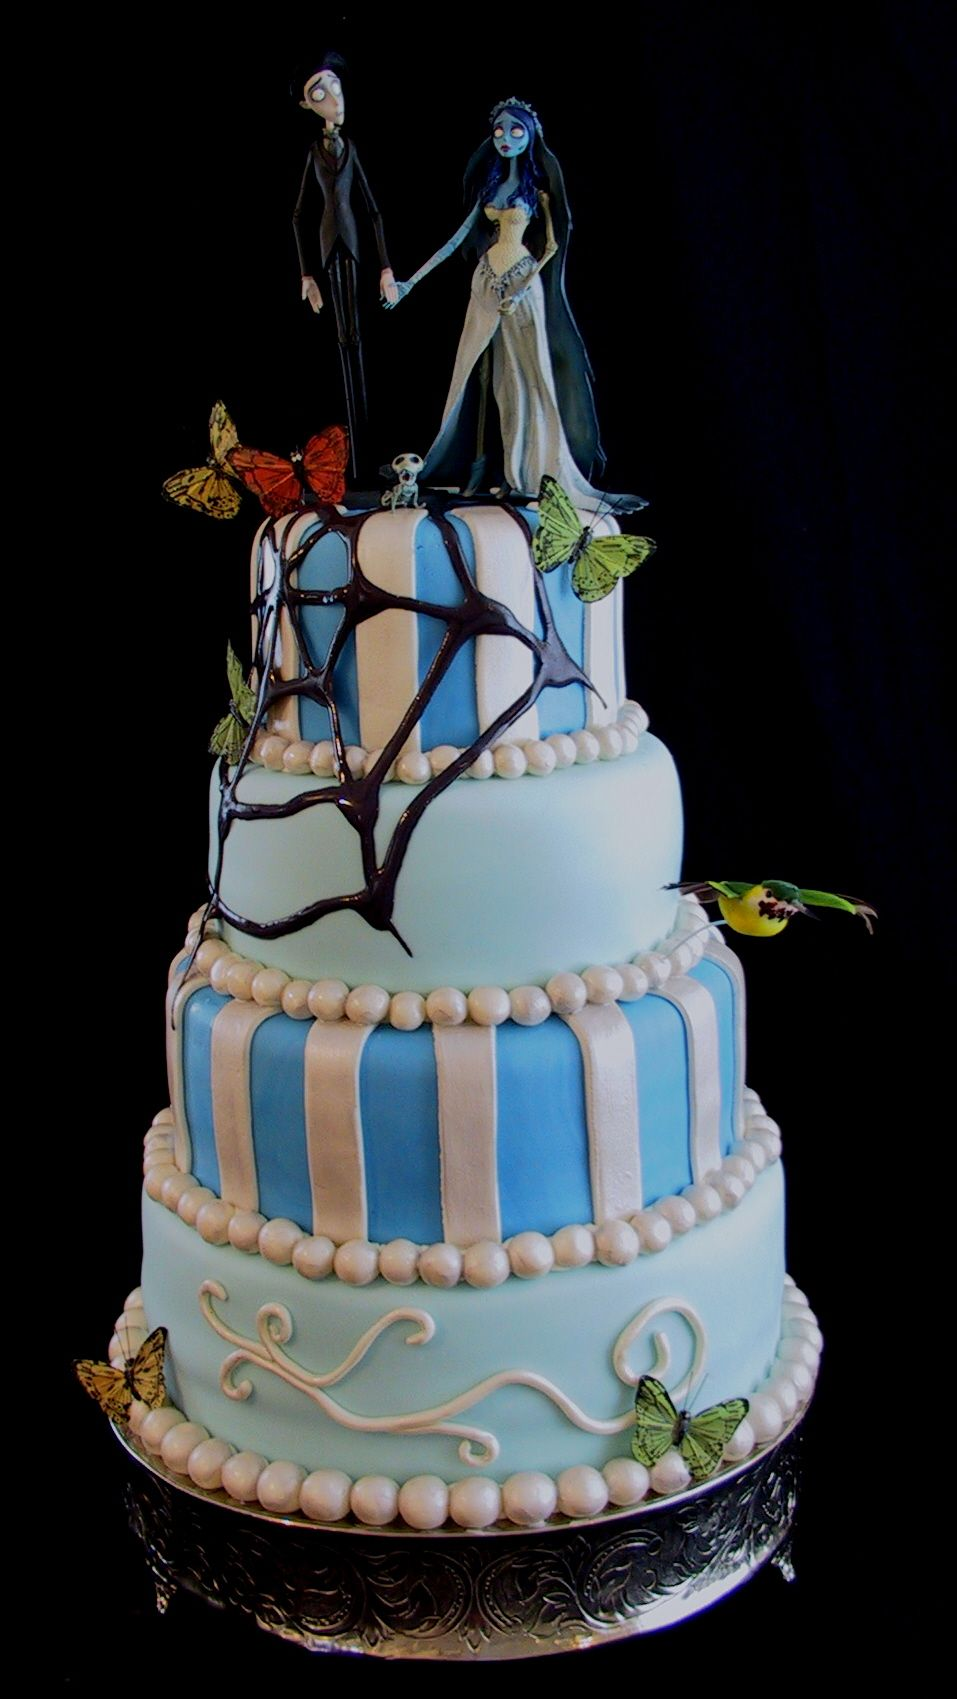 Cakes images wedding cake hd wallpaper and background photos - Corpse Bride Wedding Cake Corpse Bride Photo 32415231 Fanpop Fanclubs